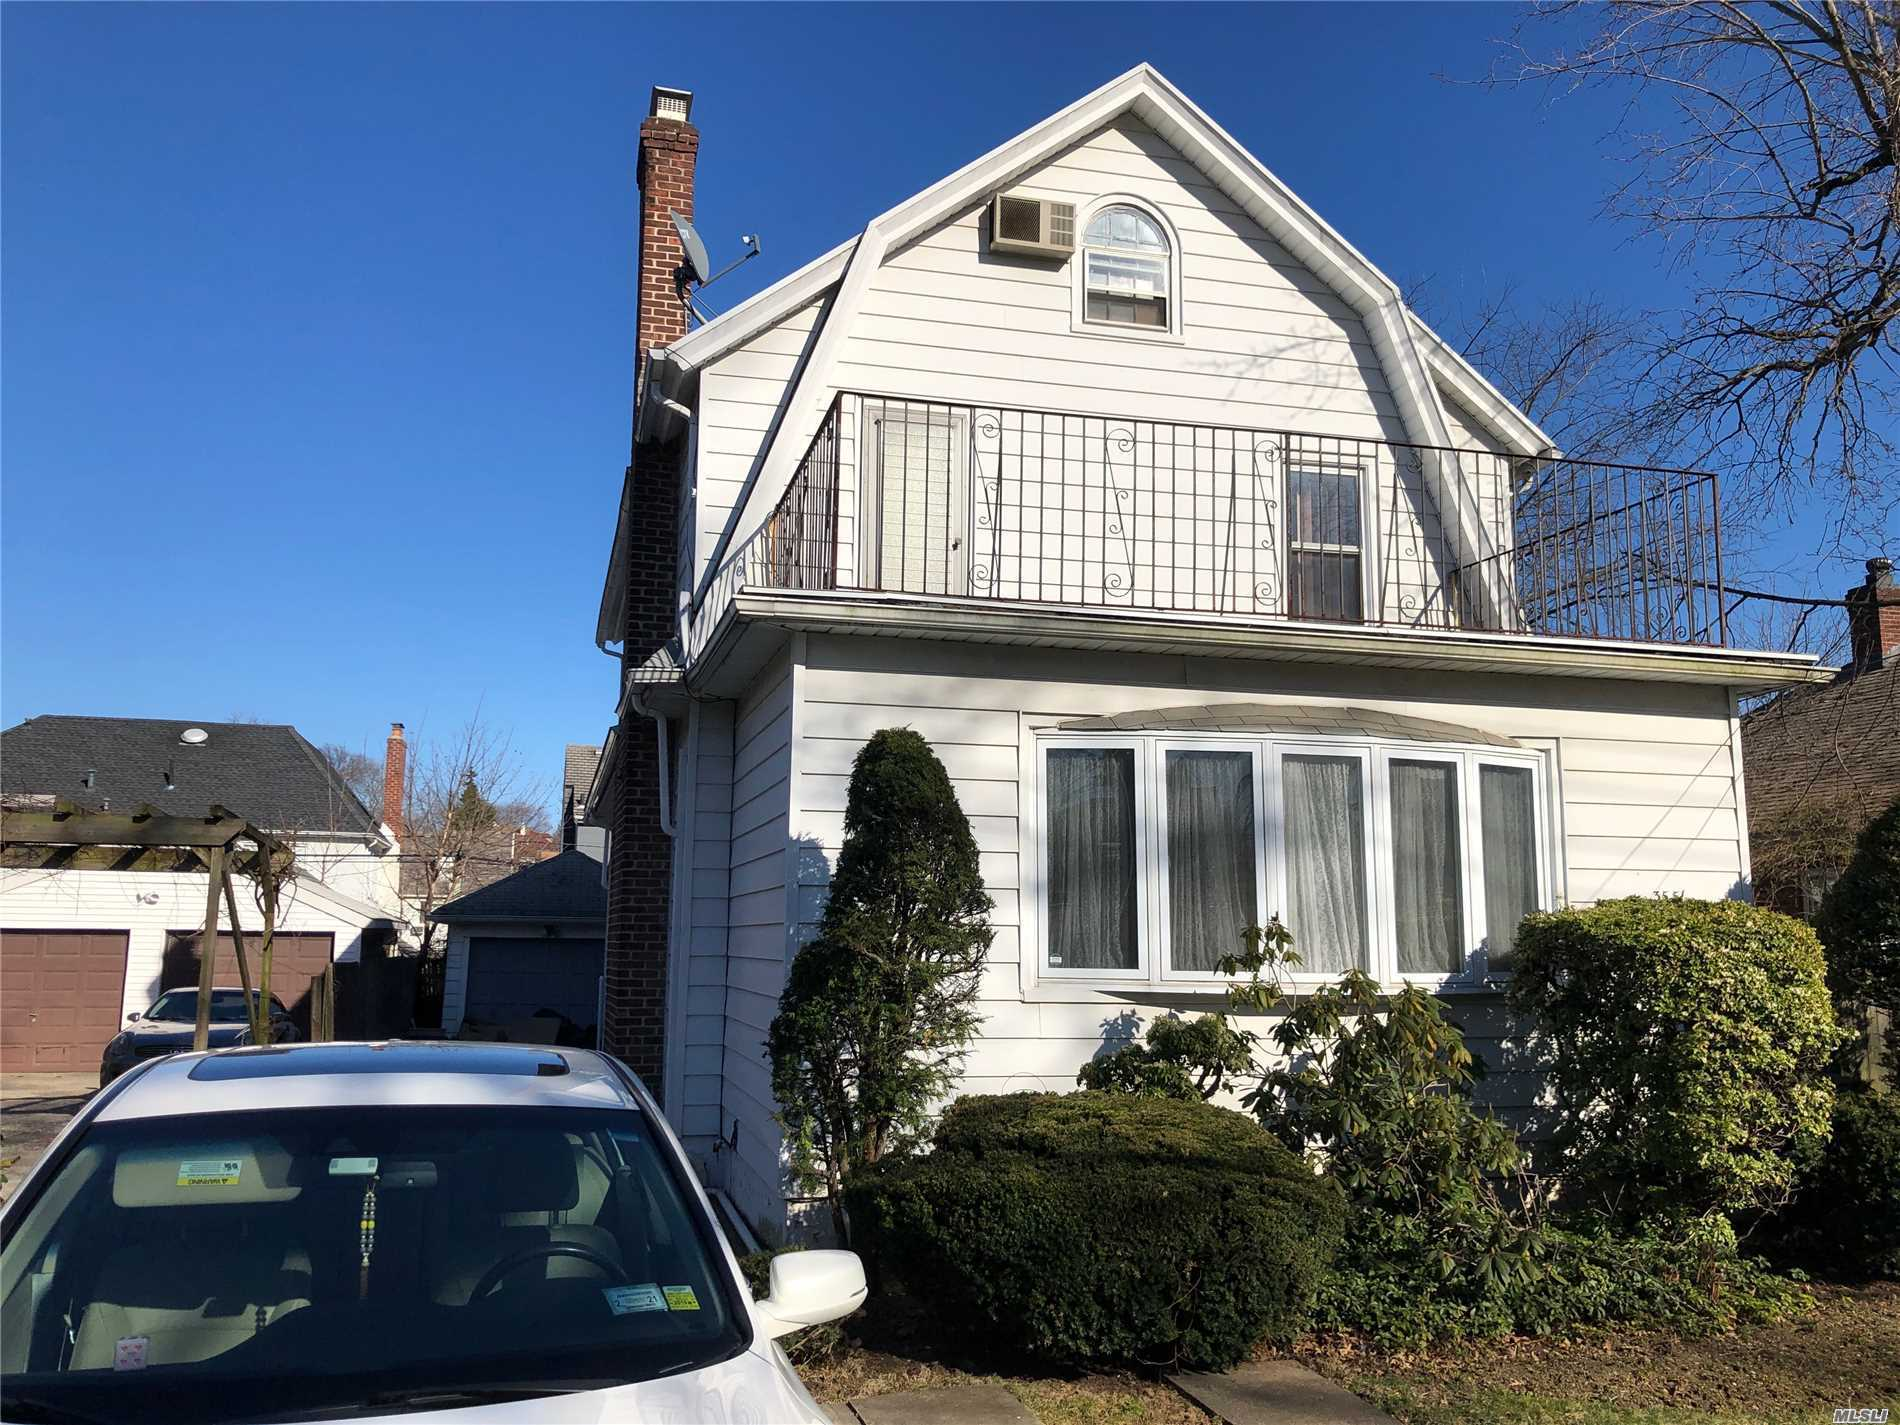 Excellent Condition, 4 Minutes To Long Island Train, Near Northern Blvd, Convenient To All.big lot 6000can build up to 3900sqft house. Great School (P.S.32&1.S.25) Express Bus To Manhattan& Local Bus Q28 To Main Street.1 car Garage &pvt driveway. Laundry Room And Boiler Room In The Basement.